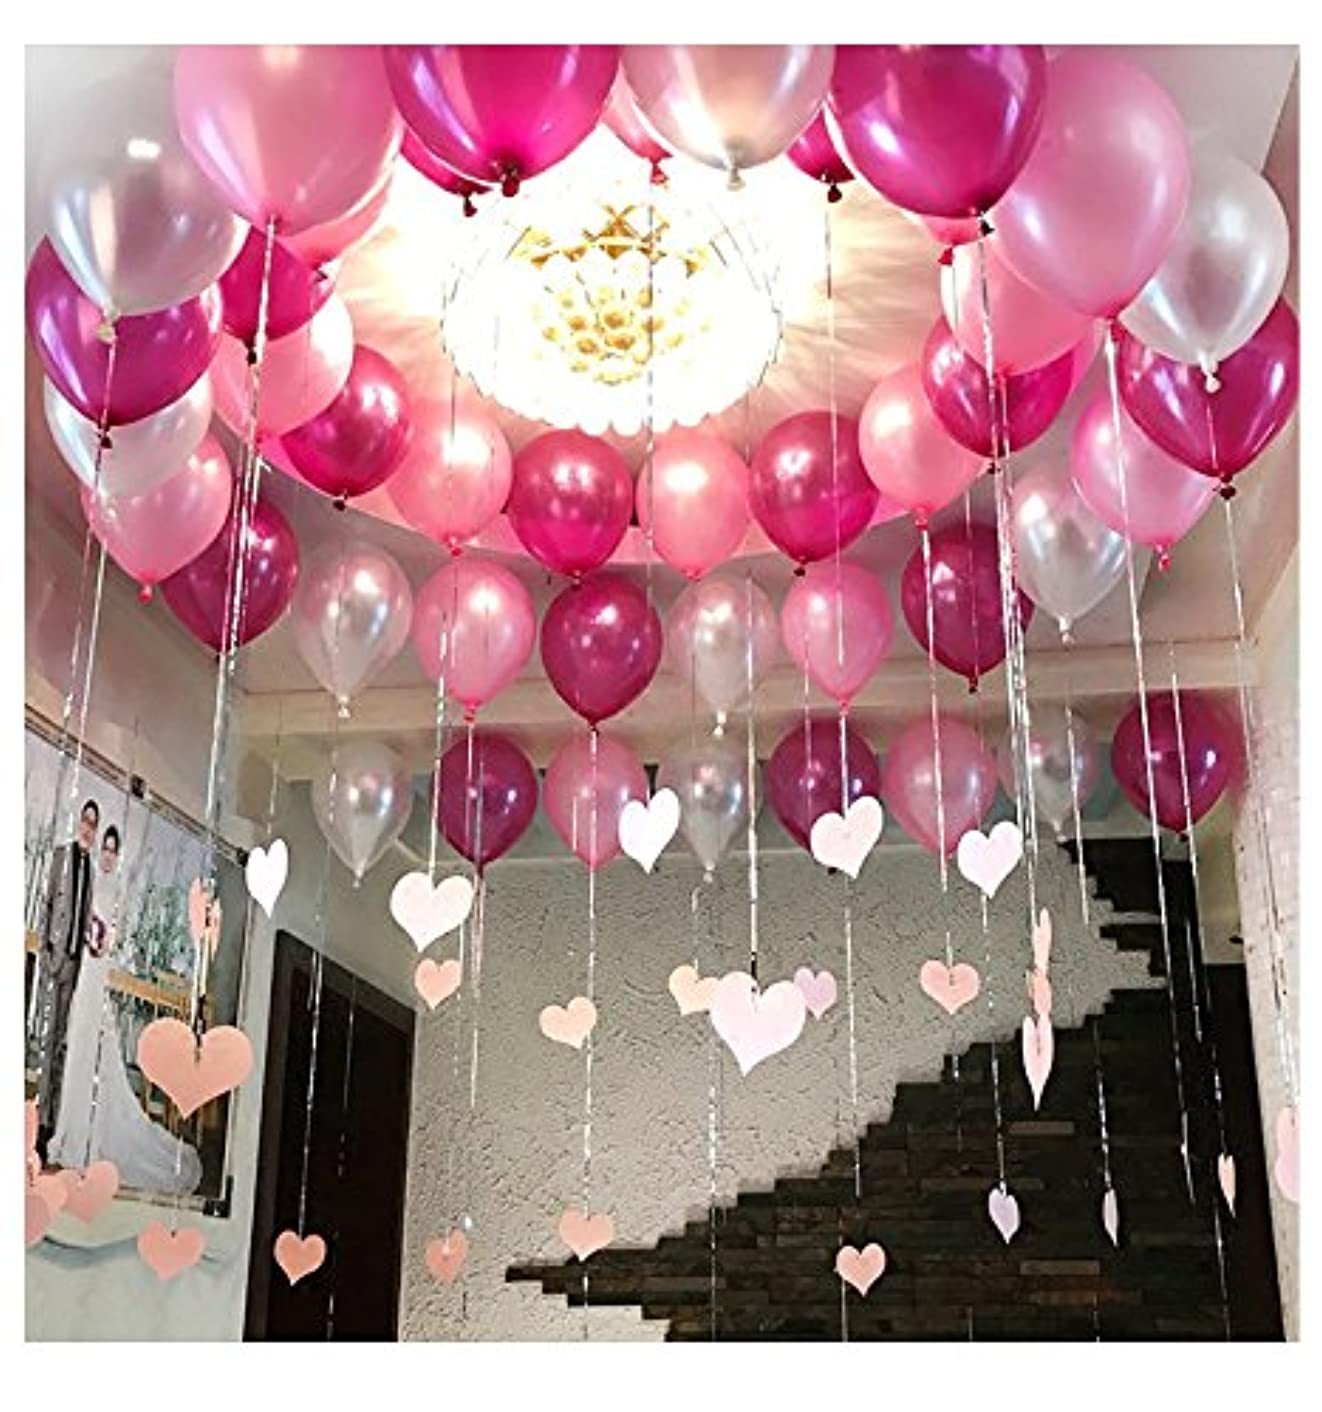 Pearl Balloon Thicked Latex Balloons Party Decor Wedding Birthday Helium Thickening Party Balls (Pink&Red Rose&Silver) 72Pcs/Pack 12 Inch 2.8g